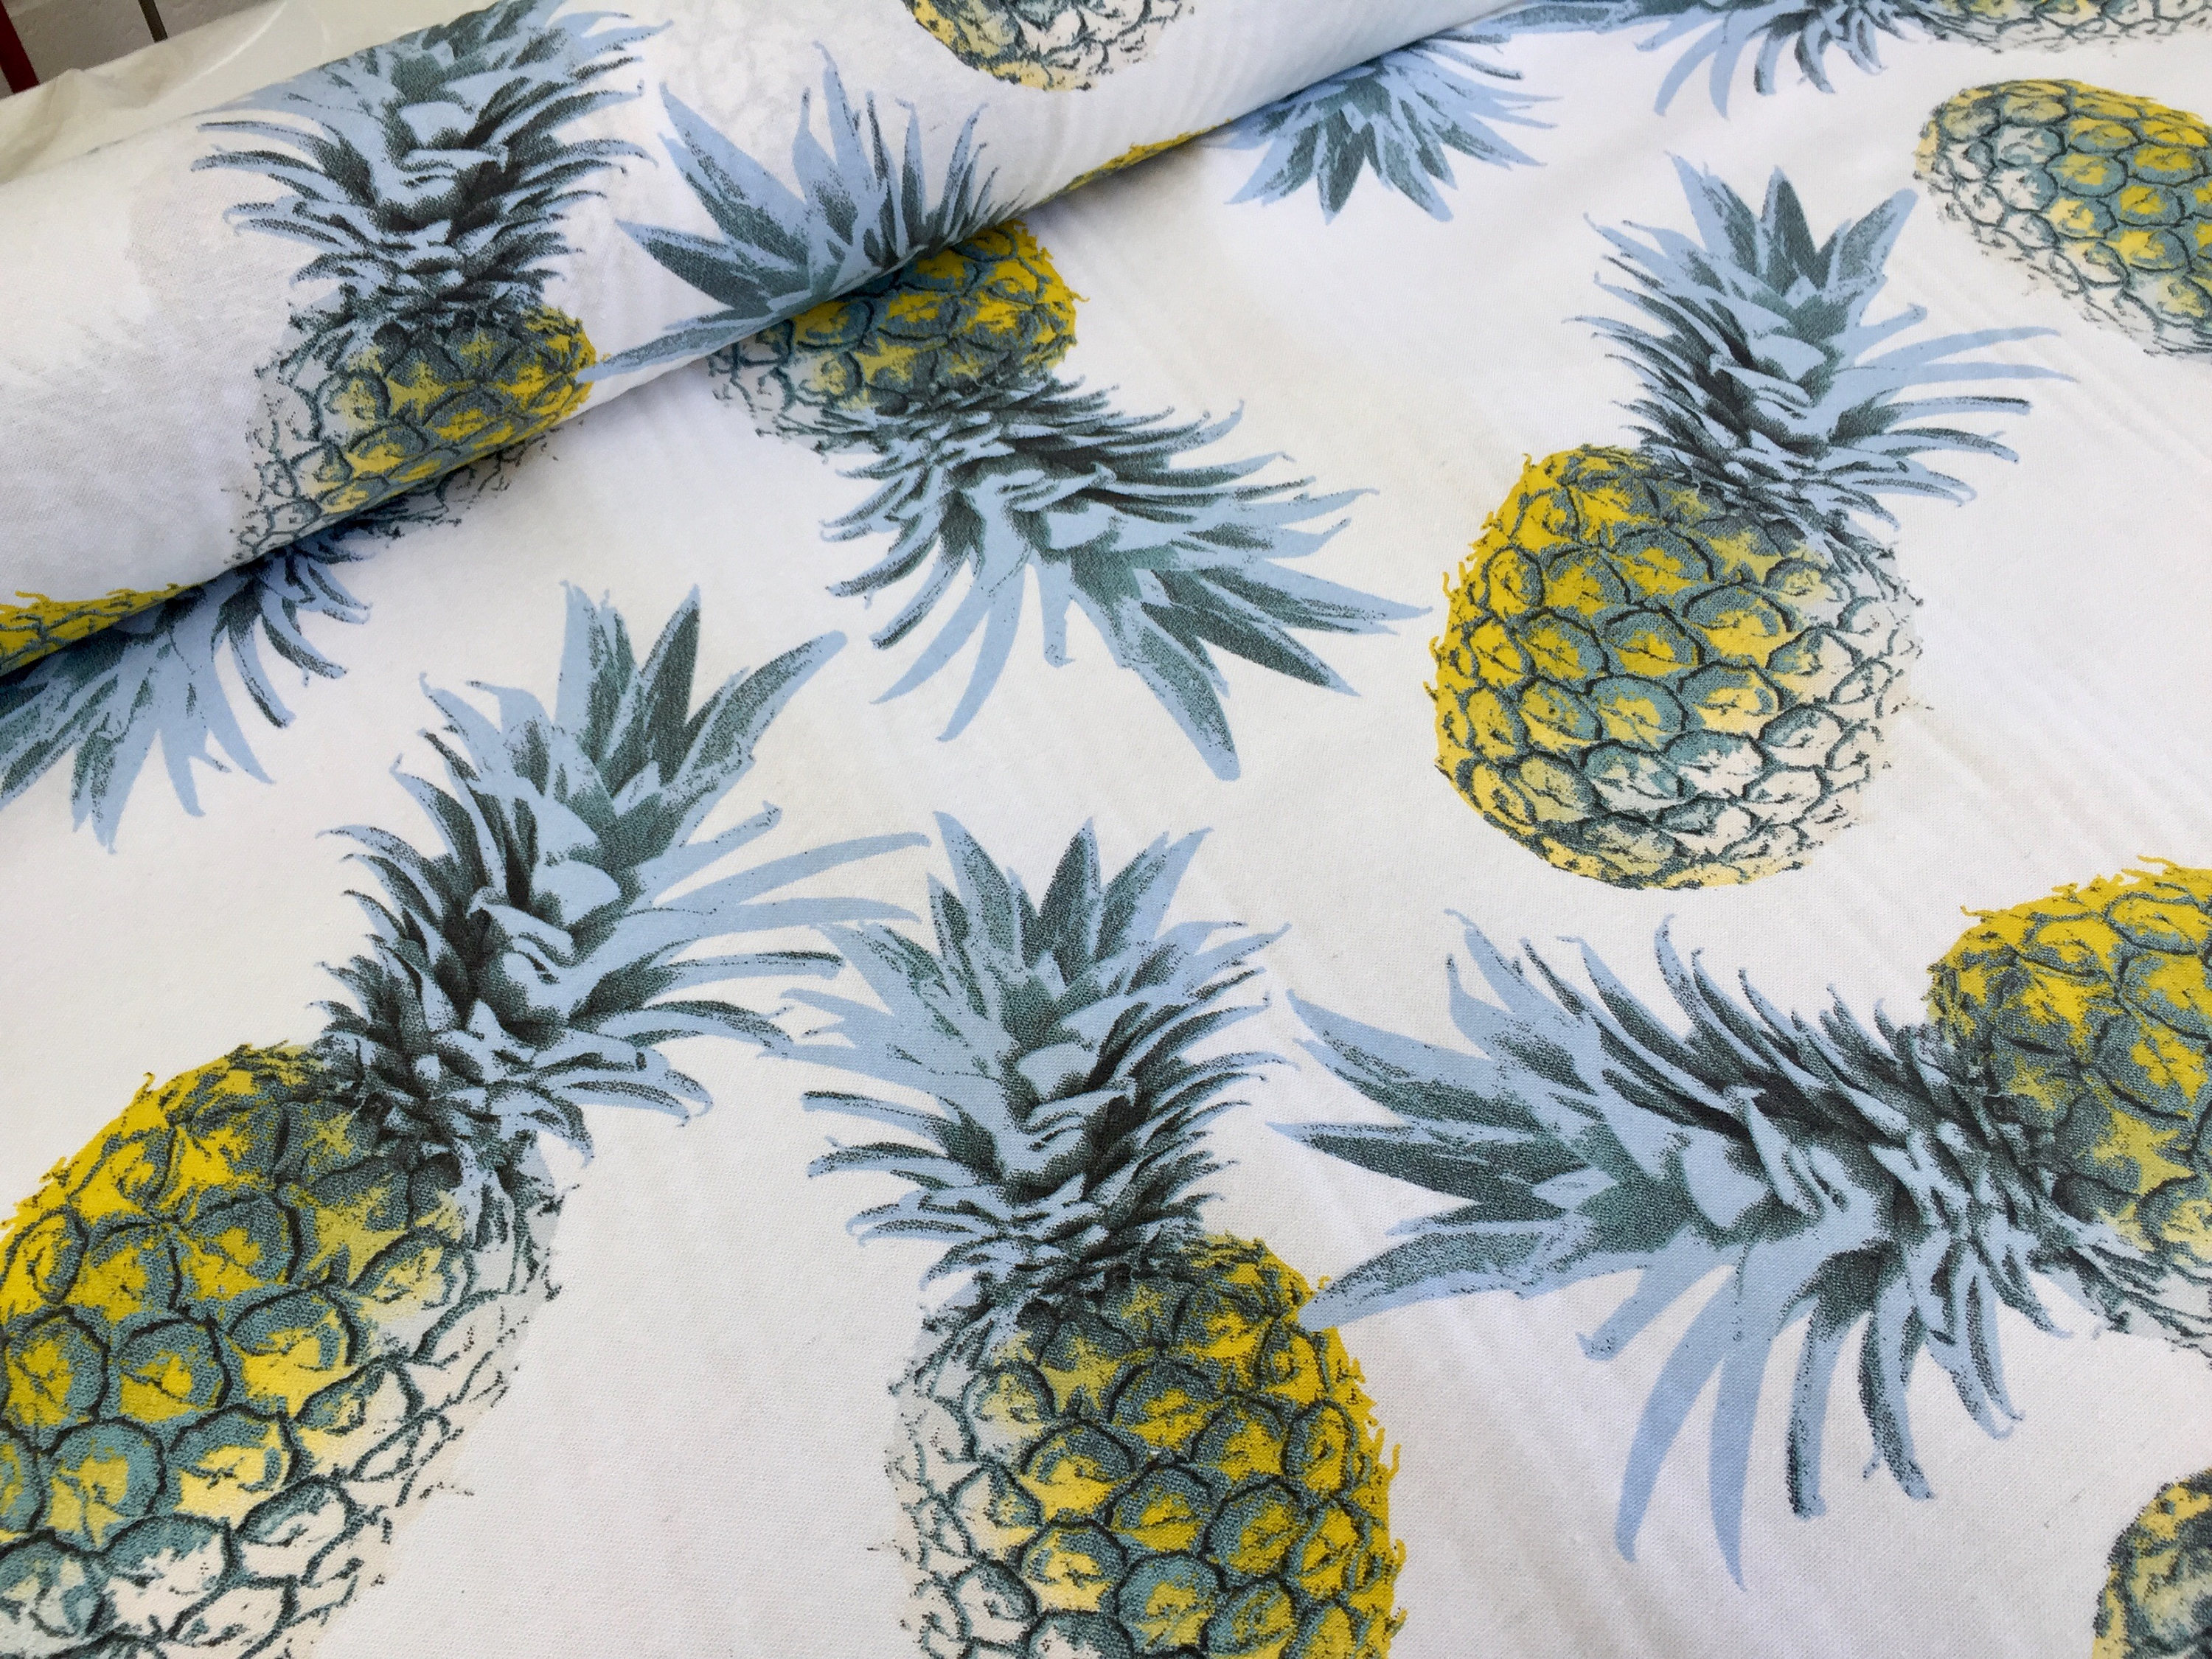 yellow-pineapple-cotton-fabric-for-curtain-upholstery-ananas-green-tropical-leaf-280cm-extra-wide-5b0eb1901.jpg